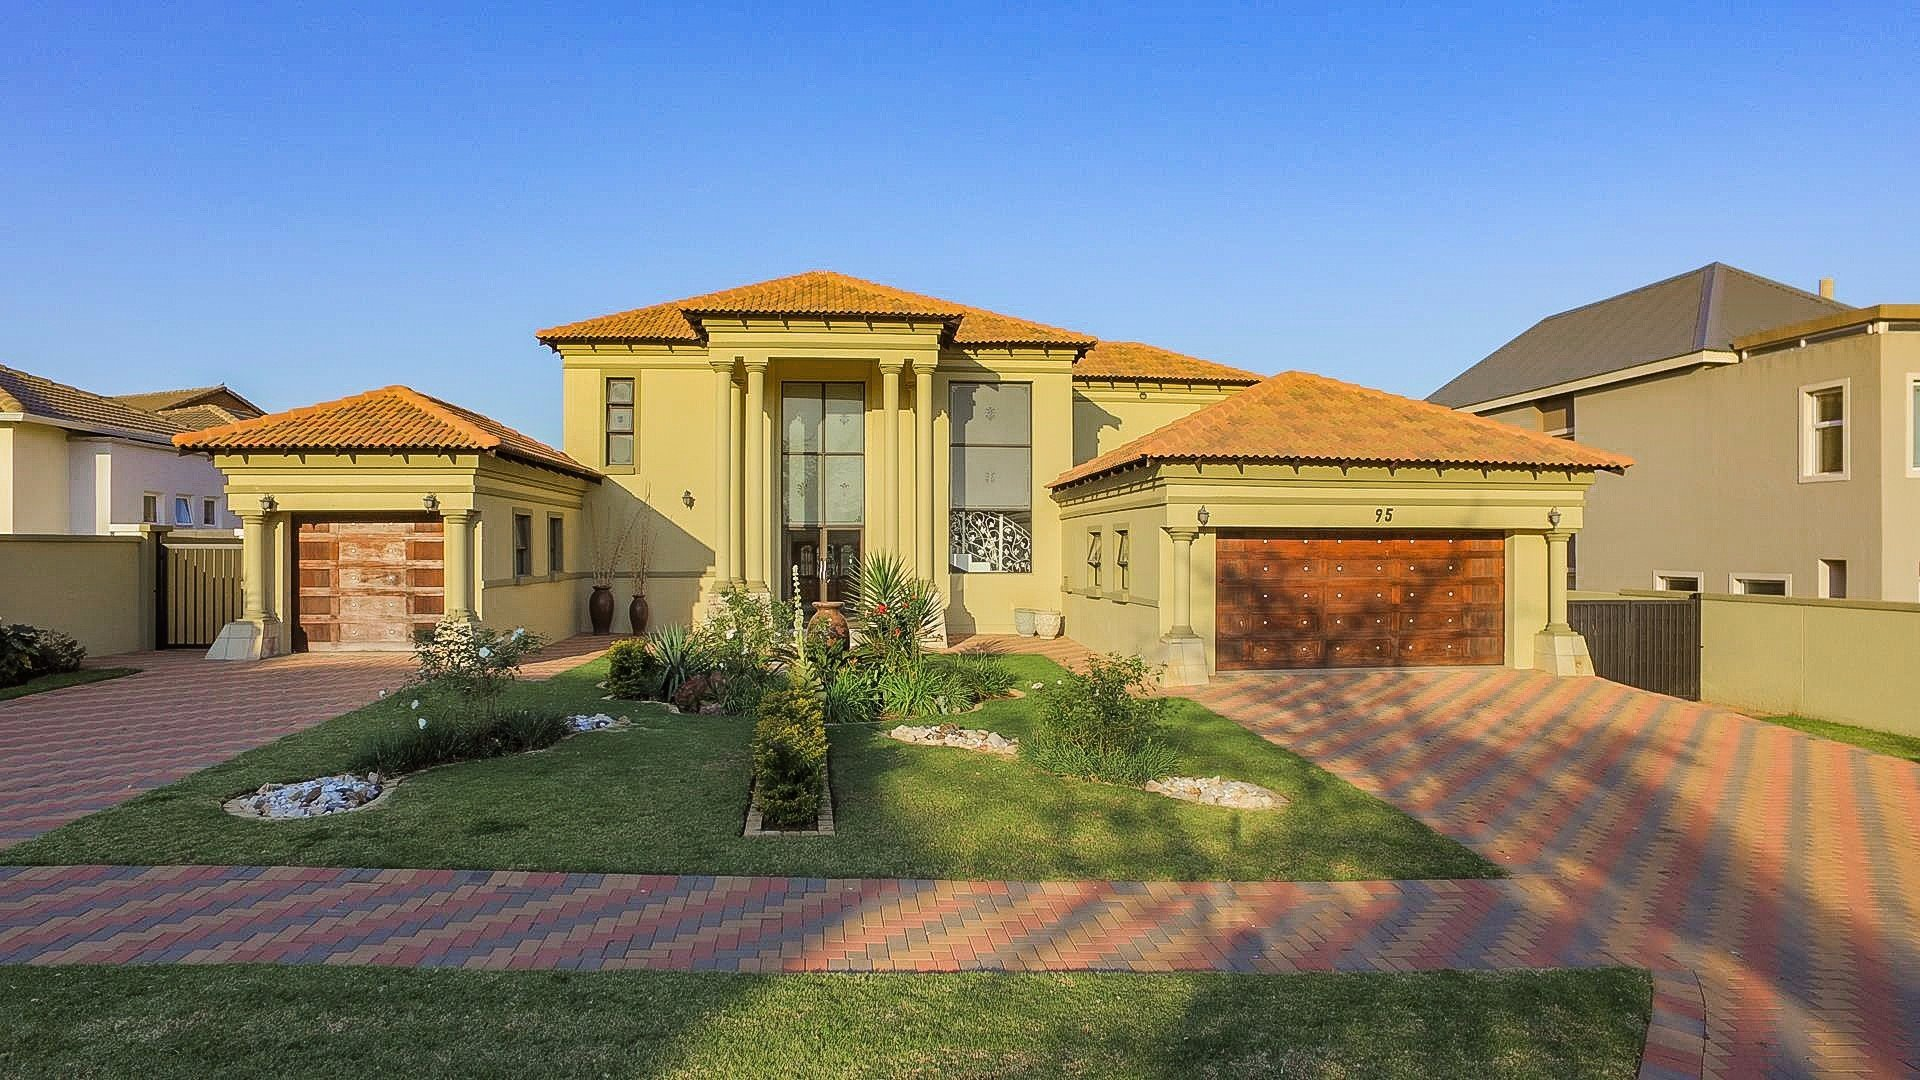 Centurion, Midlands Estate Property  | Houses For Sale Midlands Estate, Midlands Estate, House 5 bedrooms property for sale Price:4,950,000